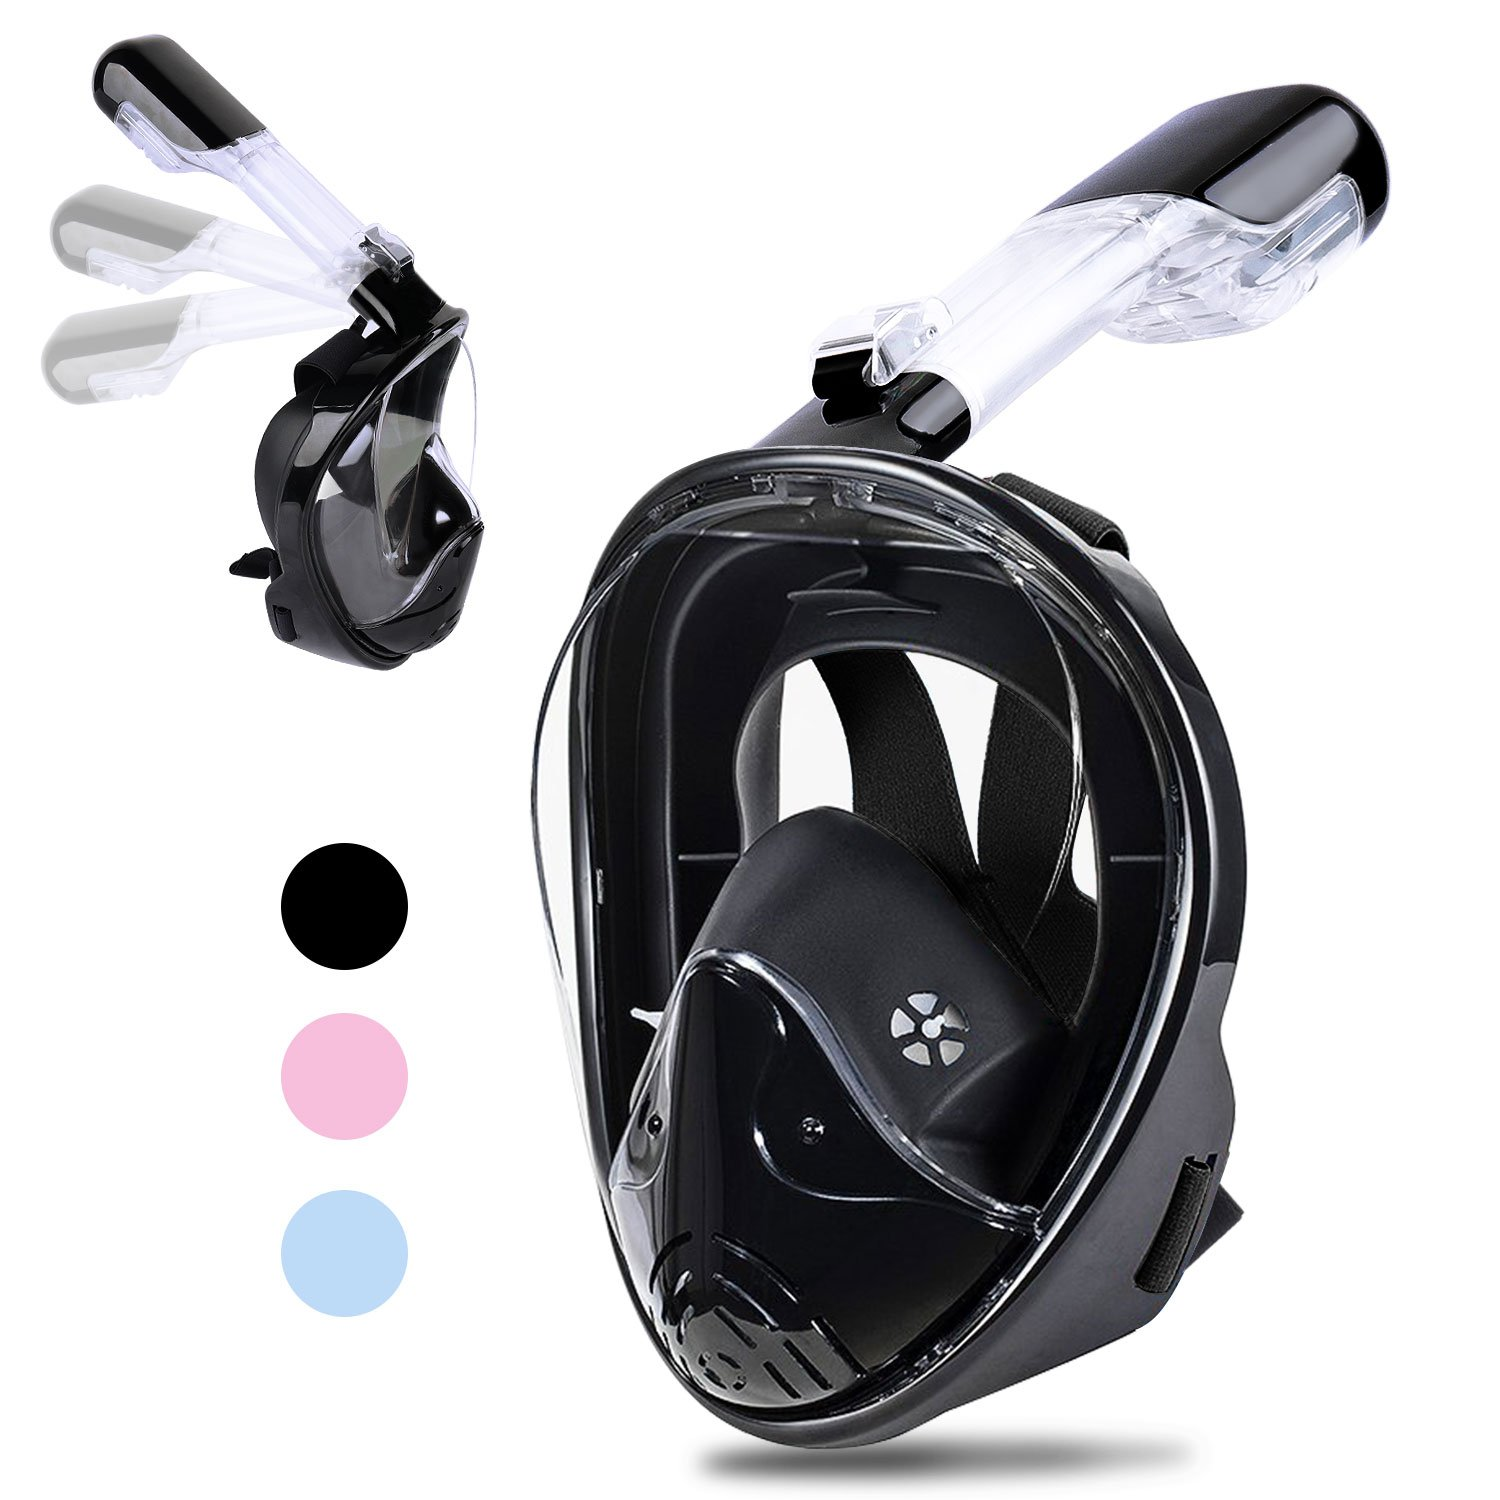 Greatever Newest Version Snorkel Mask Foldable 180 Panoramic View Free Breathing Full Face Snorkeling Mask with Detachable Camera Mount, Dry Top Set Anti-Fog Anti-Leak for Adults/Kids